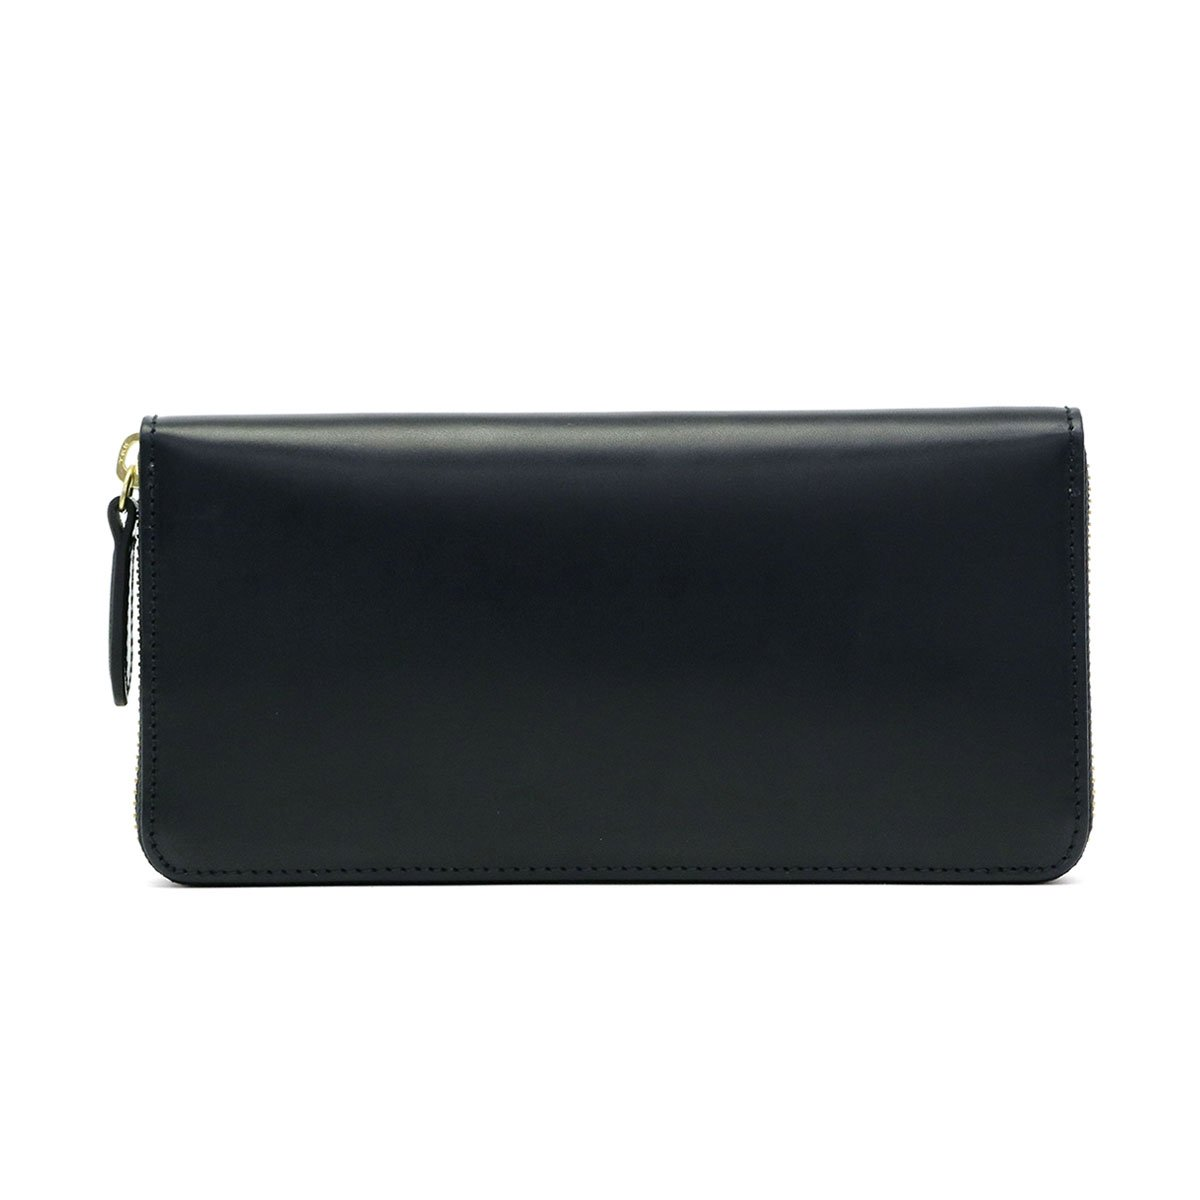 [スロウ]SLOW ハービー herbie round long wallet 長財布 SO659G B07F3P91TC BLACK(10)